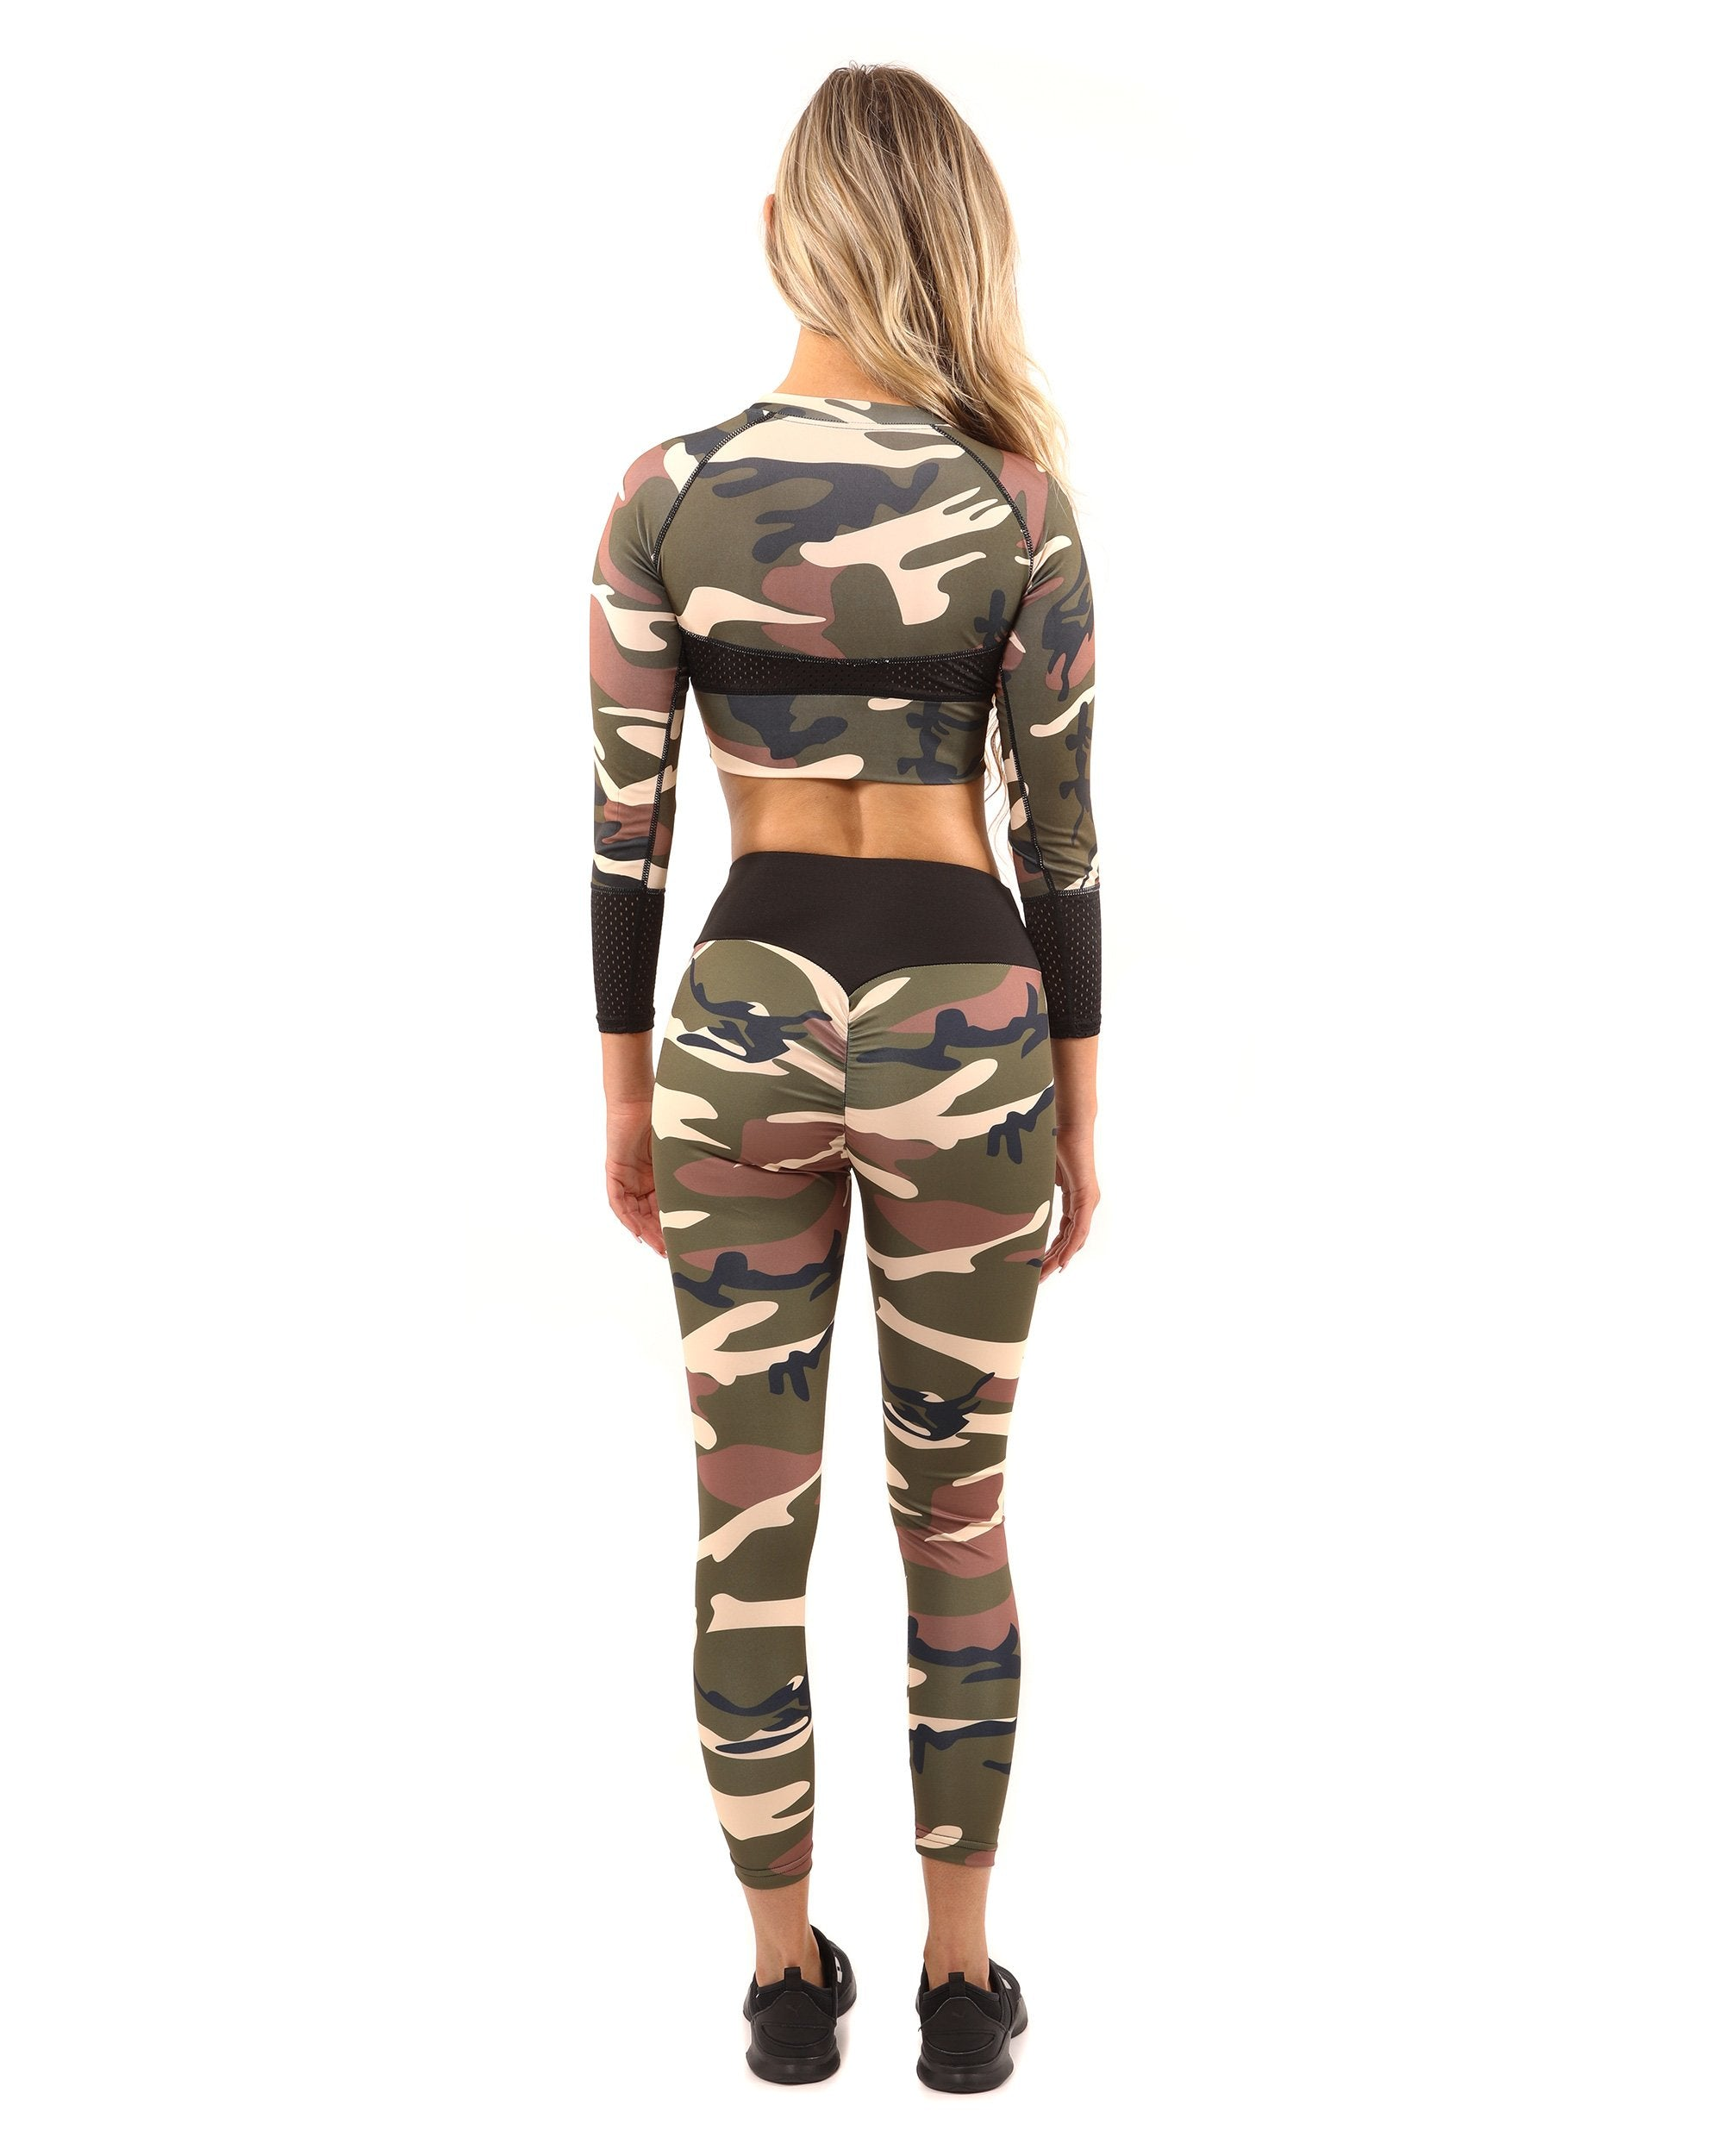 Virginia Leggings - Brown/Green - olivias-room-boutique